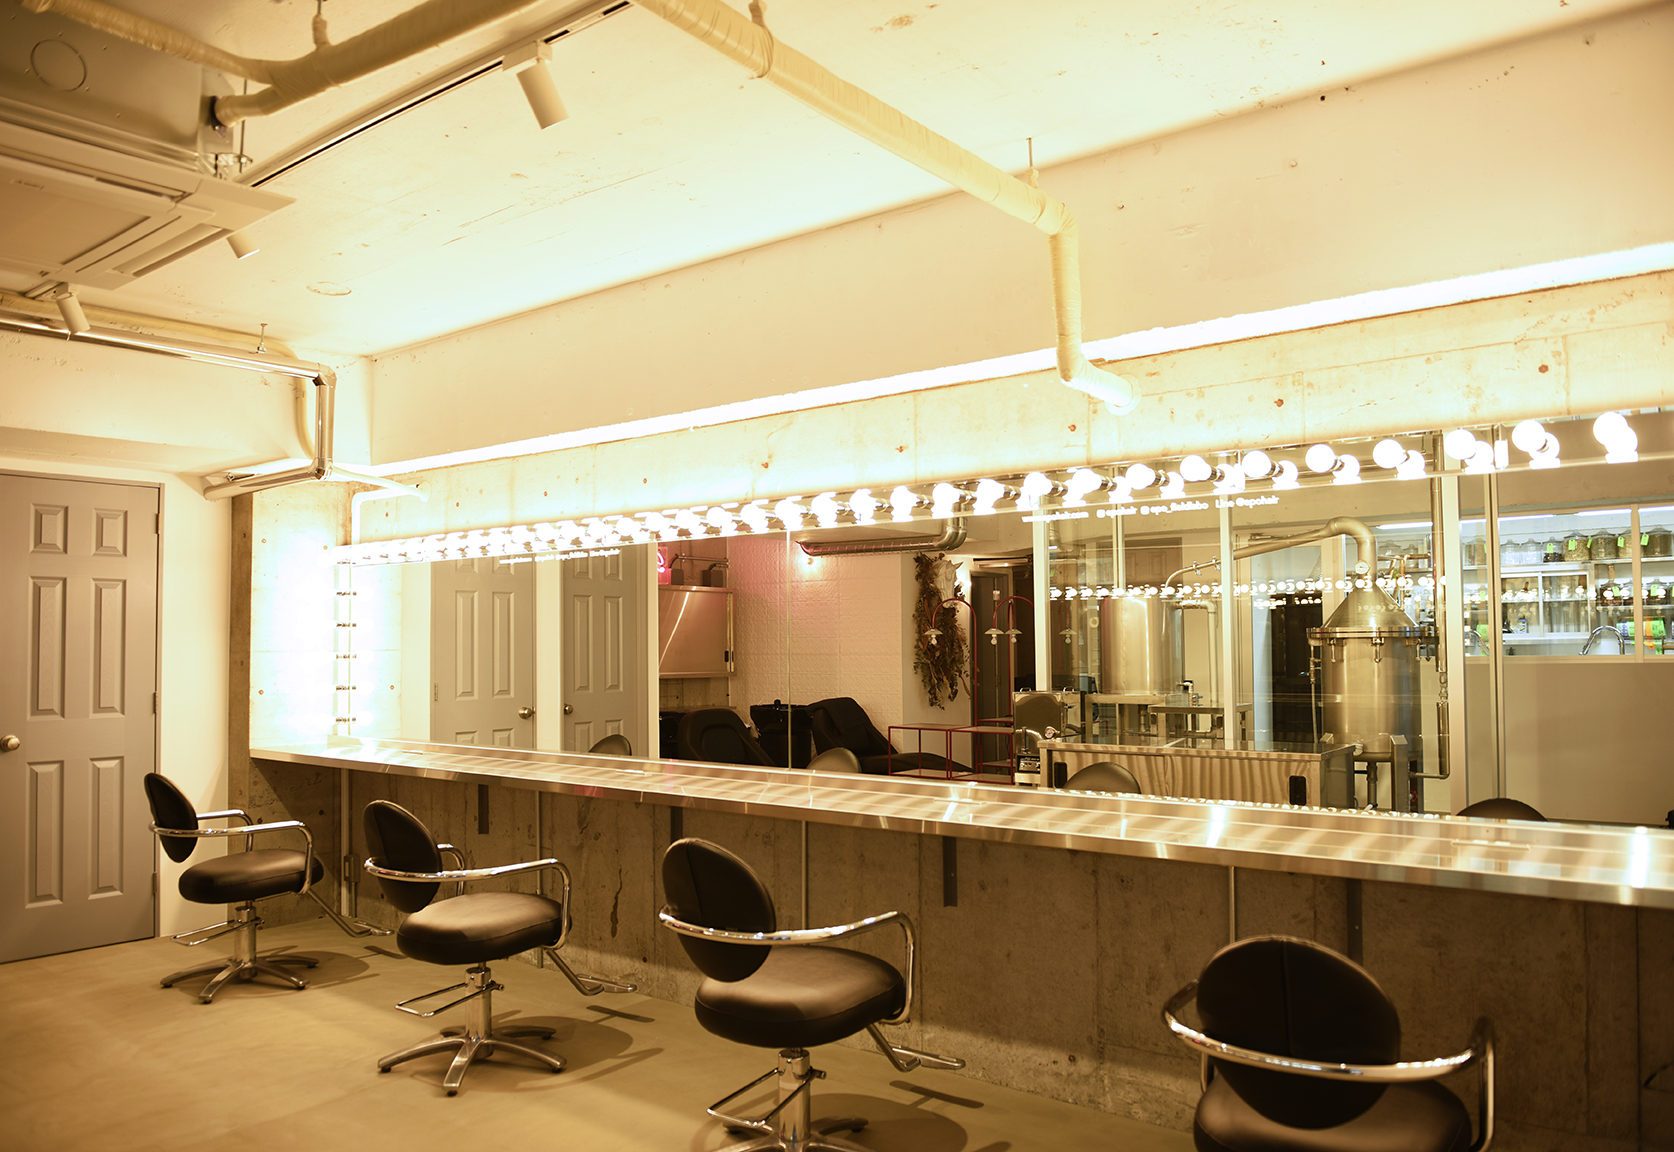 EPO Hair STUDIO - 東京都 渋谷区 富ヶ谷 1-9-15 1F1-9-15 1F Tomigaya,Shibuya,Tokyo zip 151-0063tel.03.6407.9970 予約優先制openMonday 8:00 am to 5:00 pmTuesday Only Labo & FactoryOther days 10:00 am to8:00 pmLine @epohair